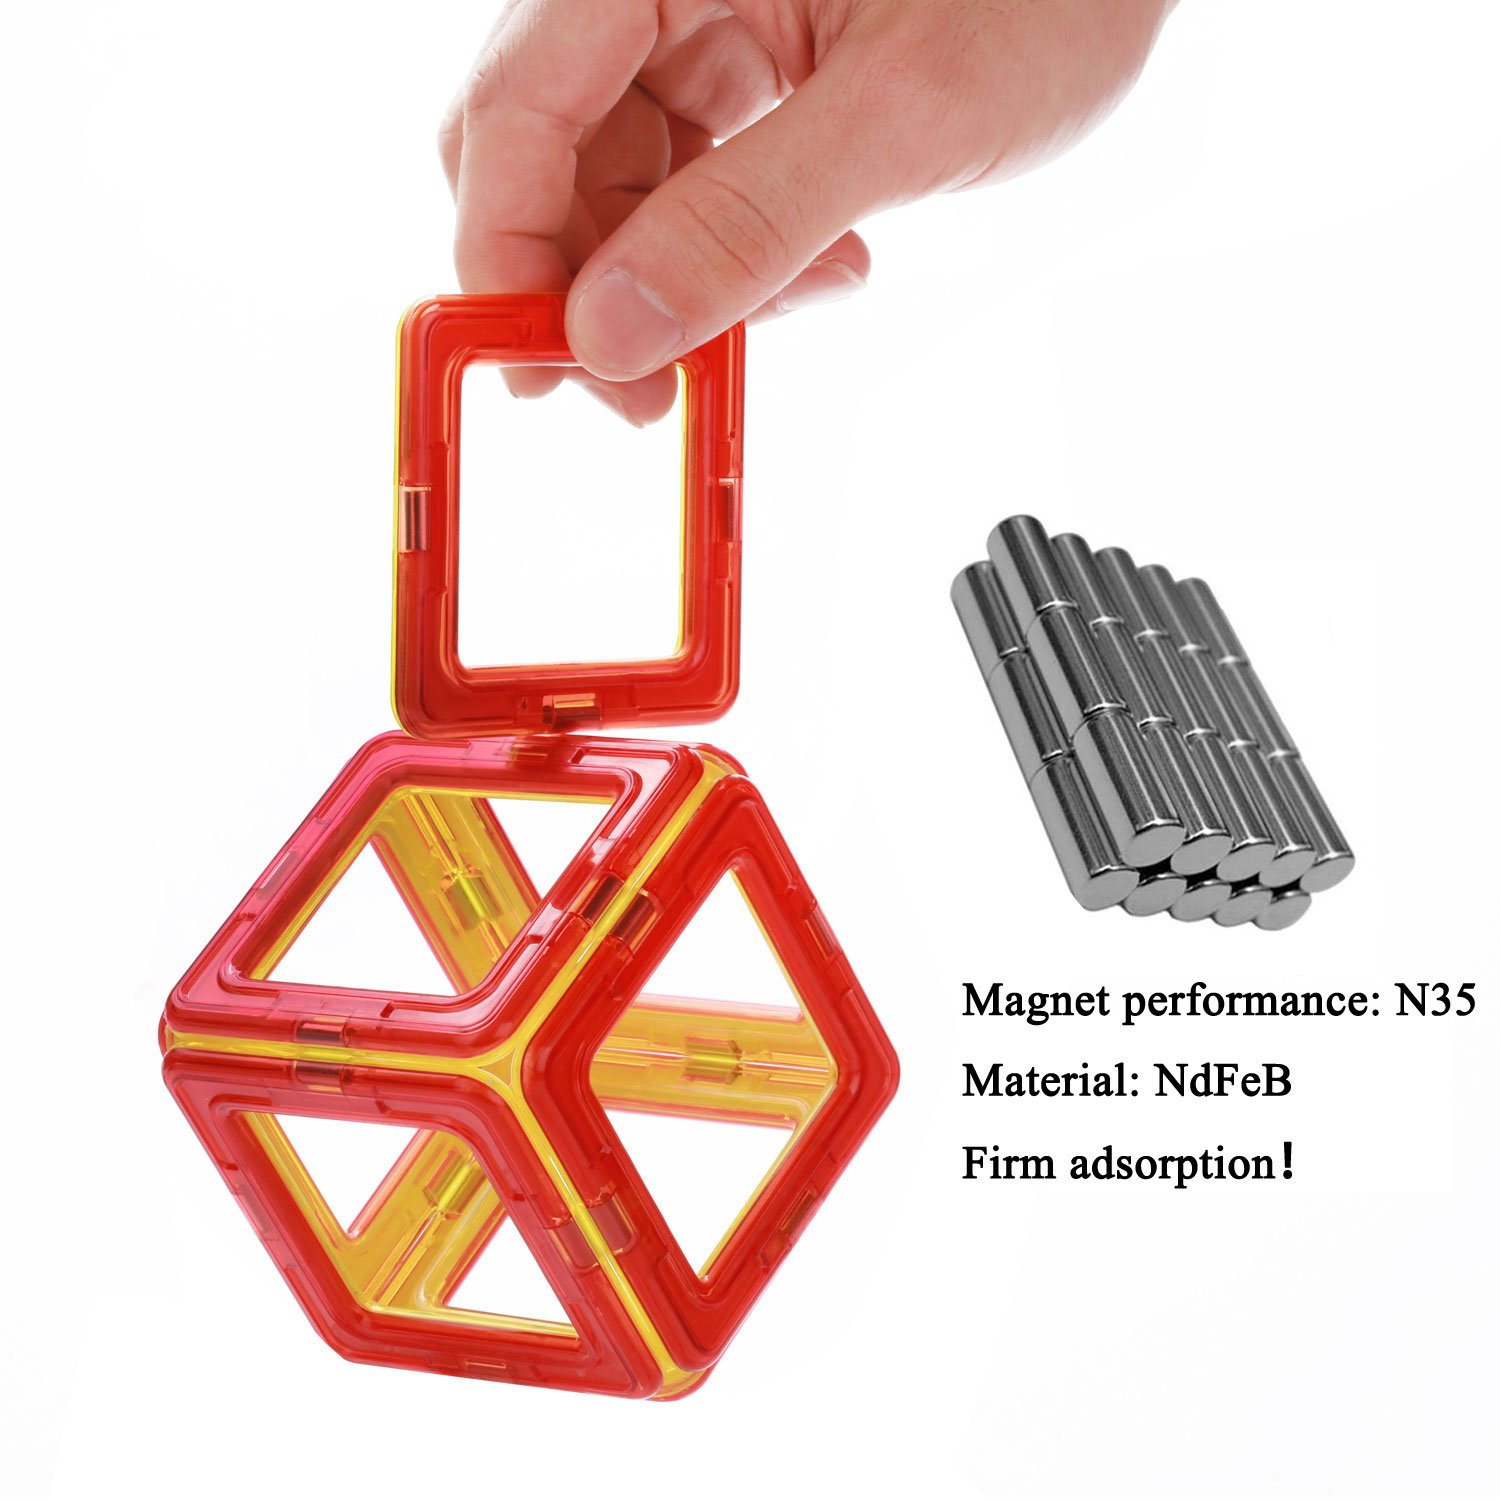 Magnetic Toys For Boys : Quadpro piece magnetic blocks building toys for boys